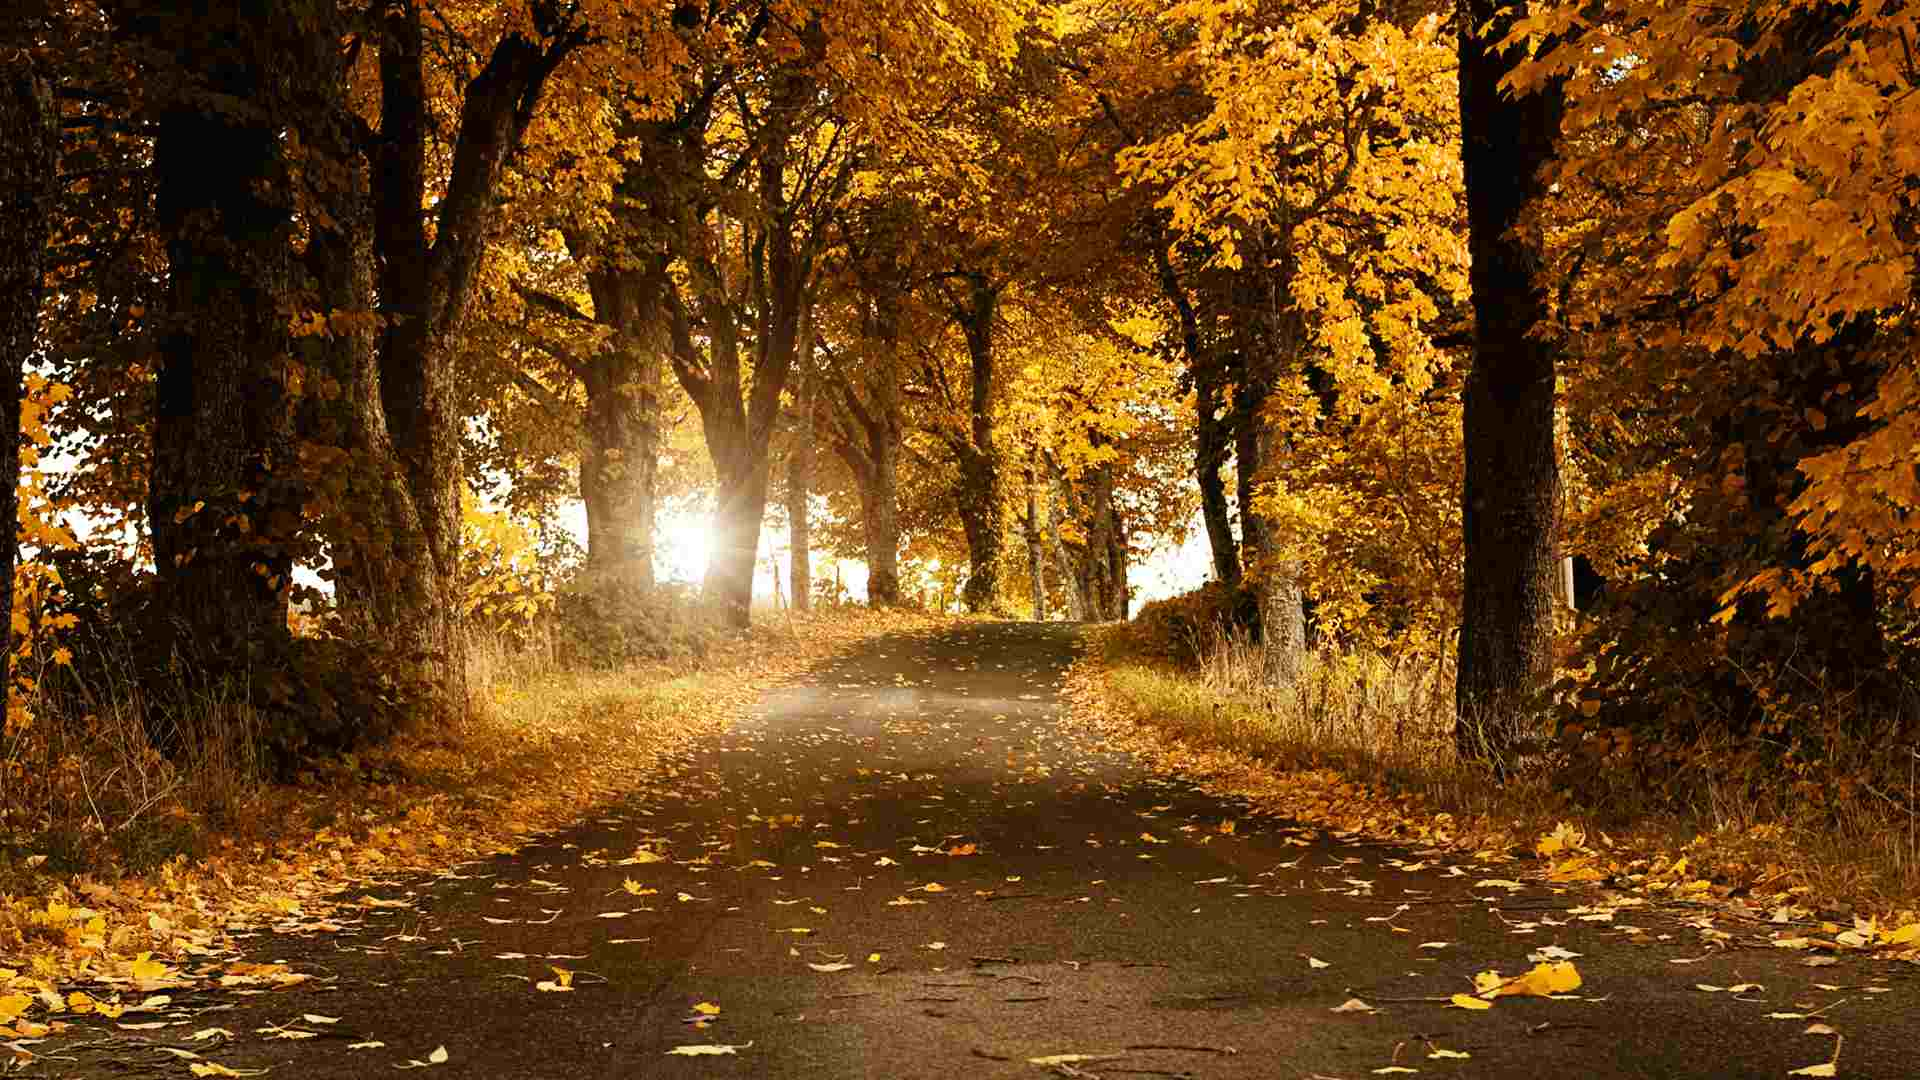 Free autumn wallpaper featuring a road surrounded by fall trees in yellow and orange.